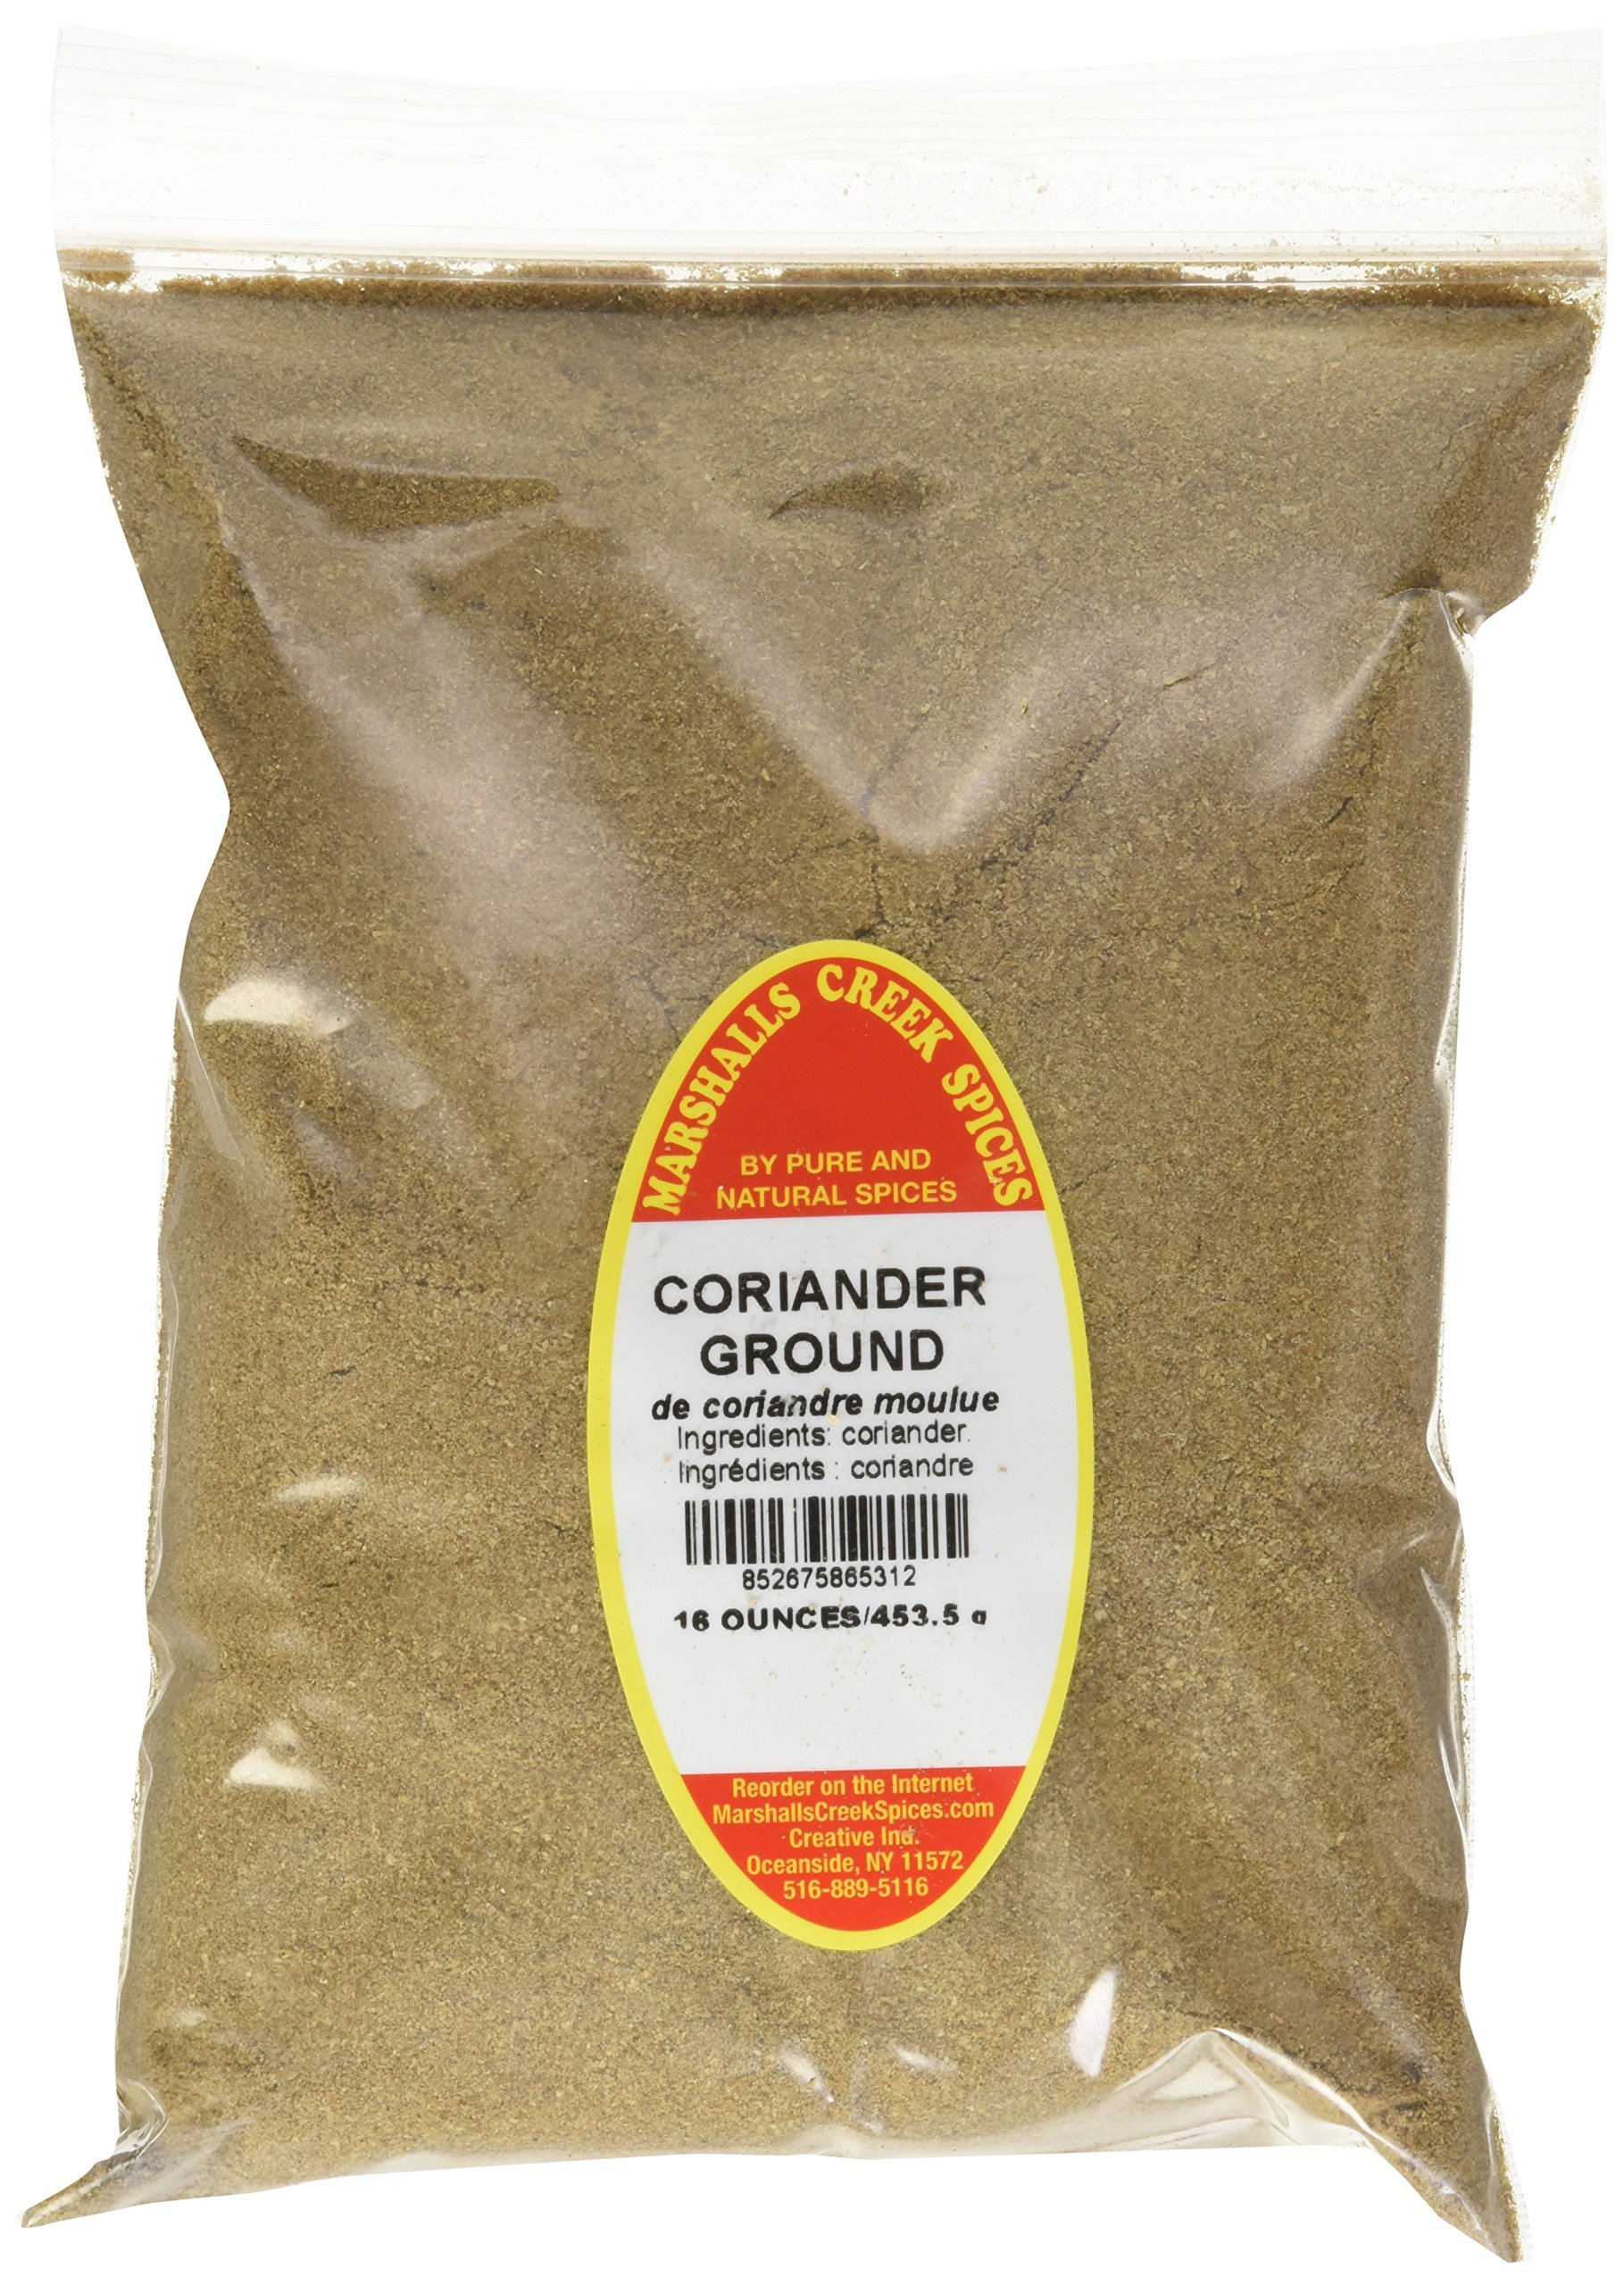 Marshalls Creek Spices Refill Pouch Coriander Ground Seasoning, XL, 16 Ounce